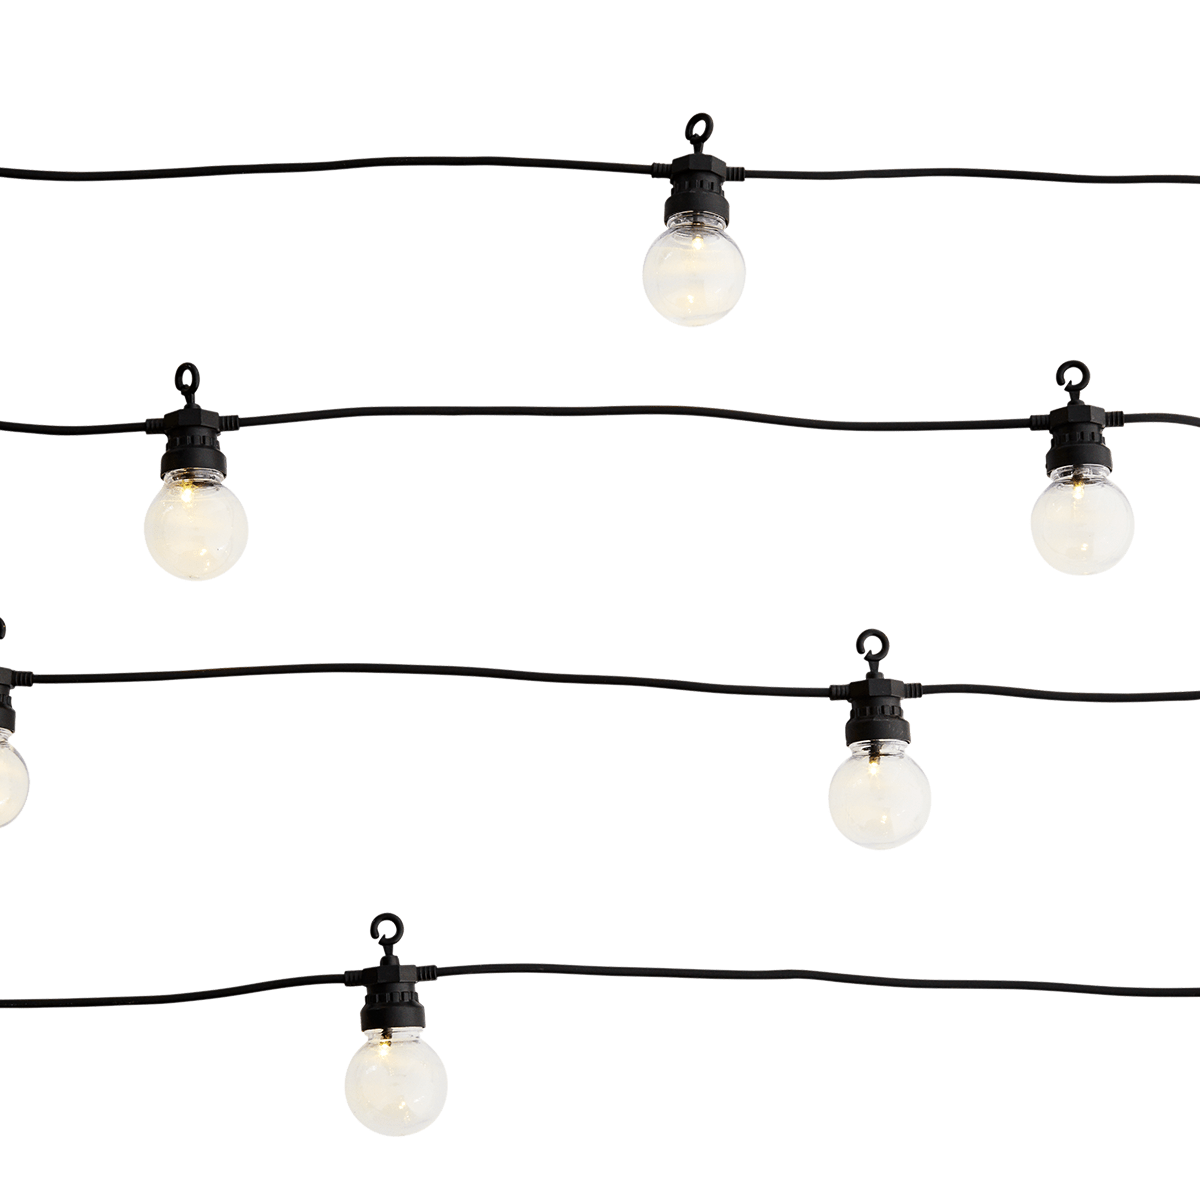 Trouva 8 5m Black Clear Plastic 10 Bulbs Outdoor String Light